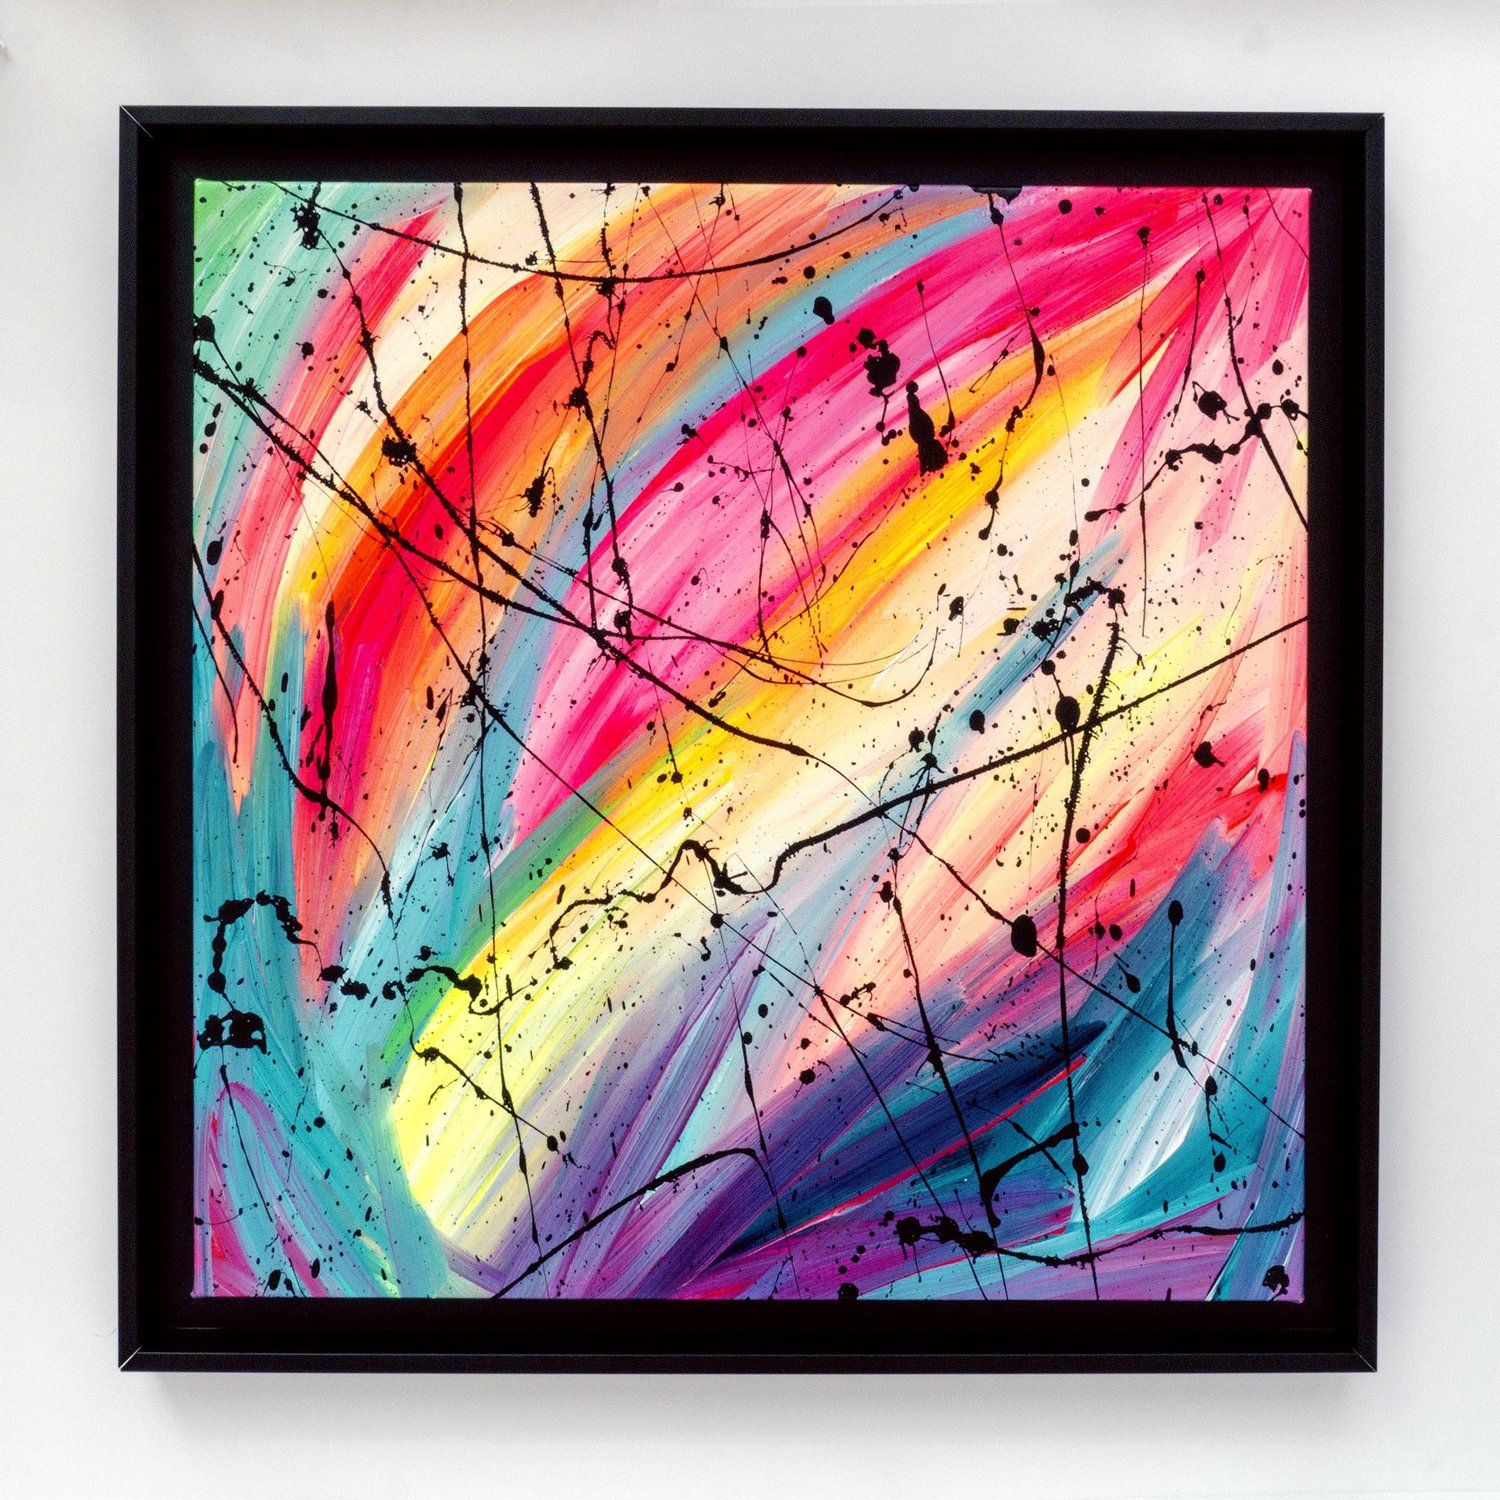 Original Vibrant Abstract Painting